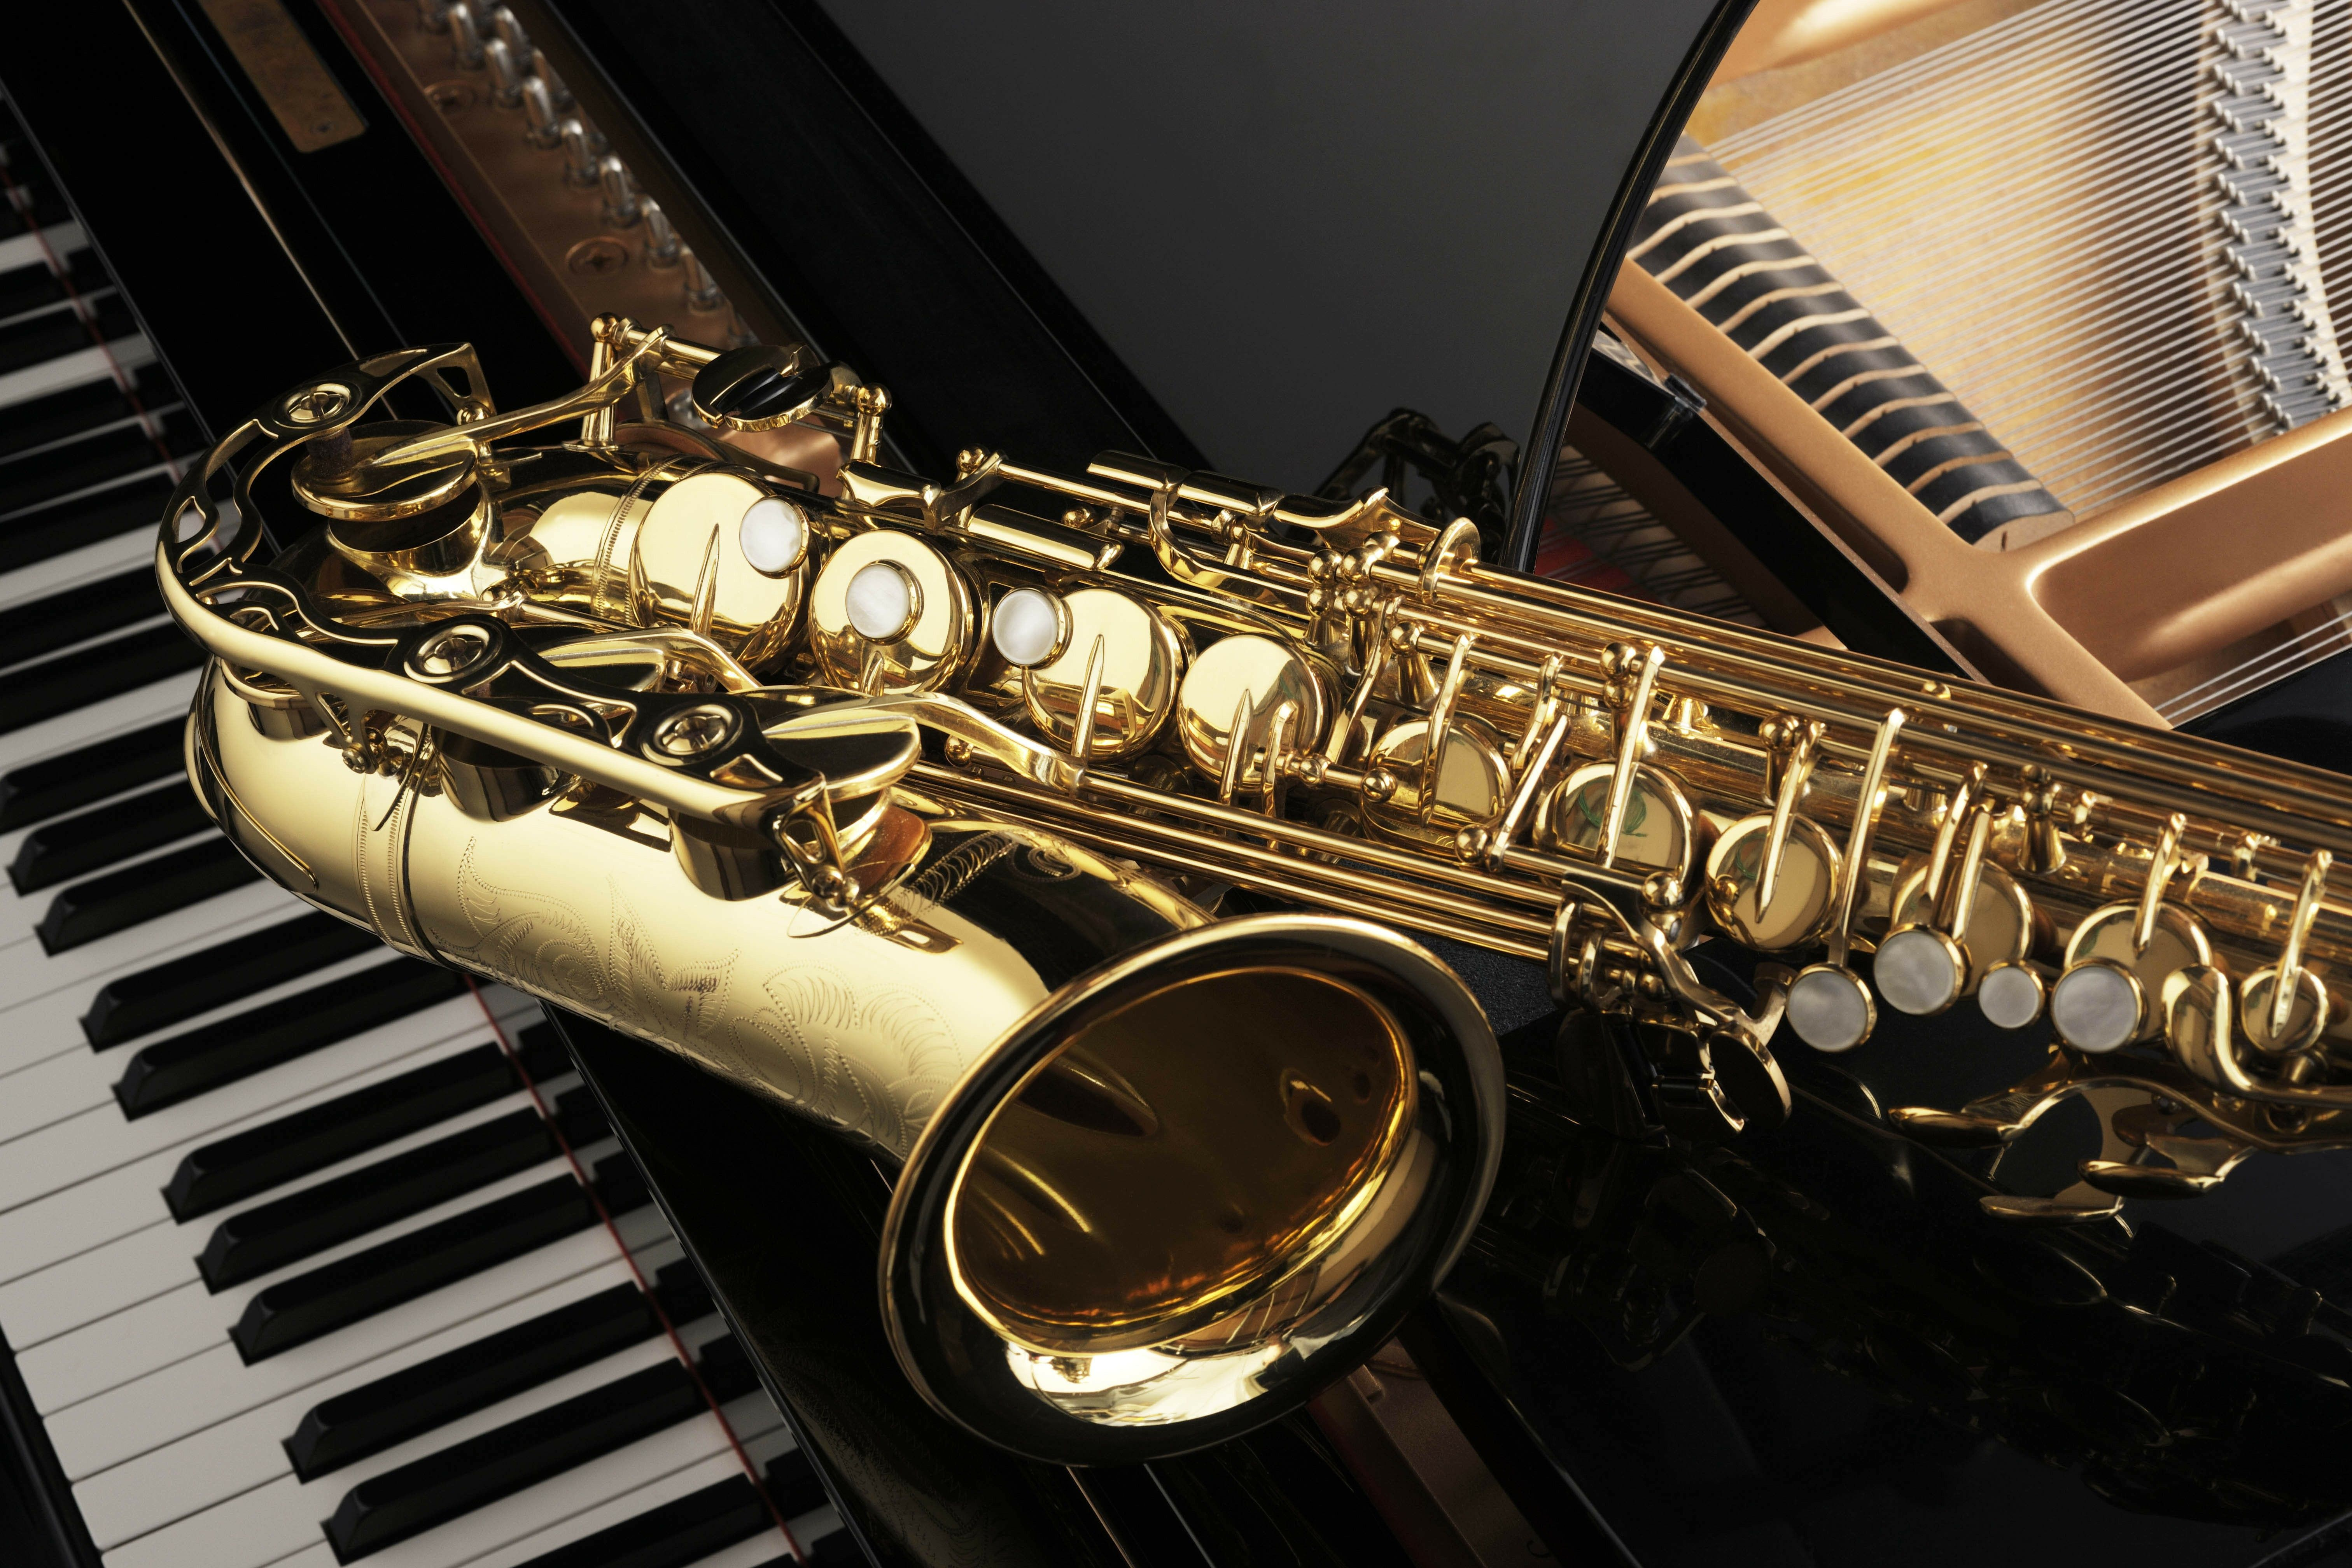 musical instrument wallpapers hd resolution download | iphone